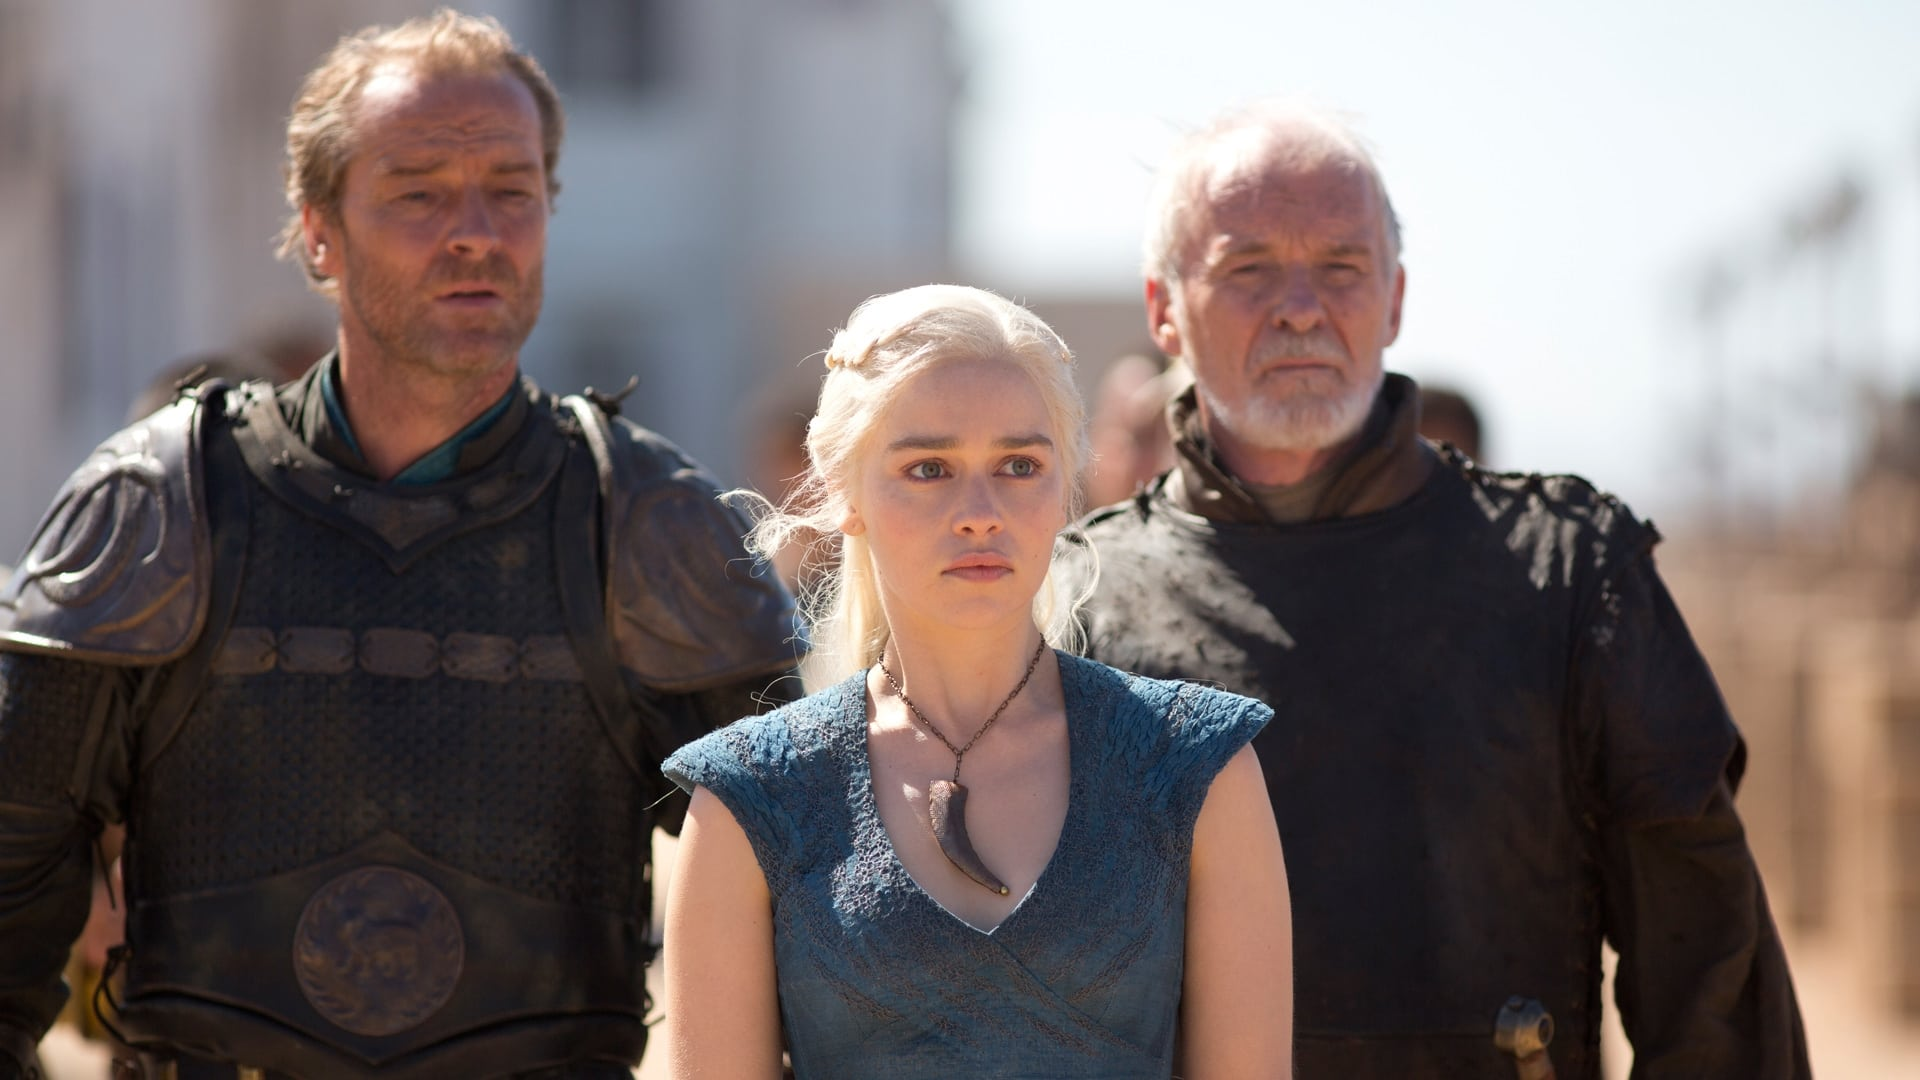 game of thrones season 3 episode 3 online free